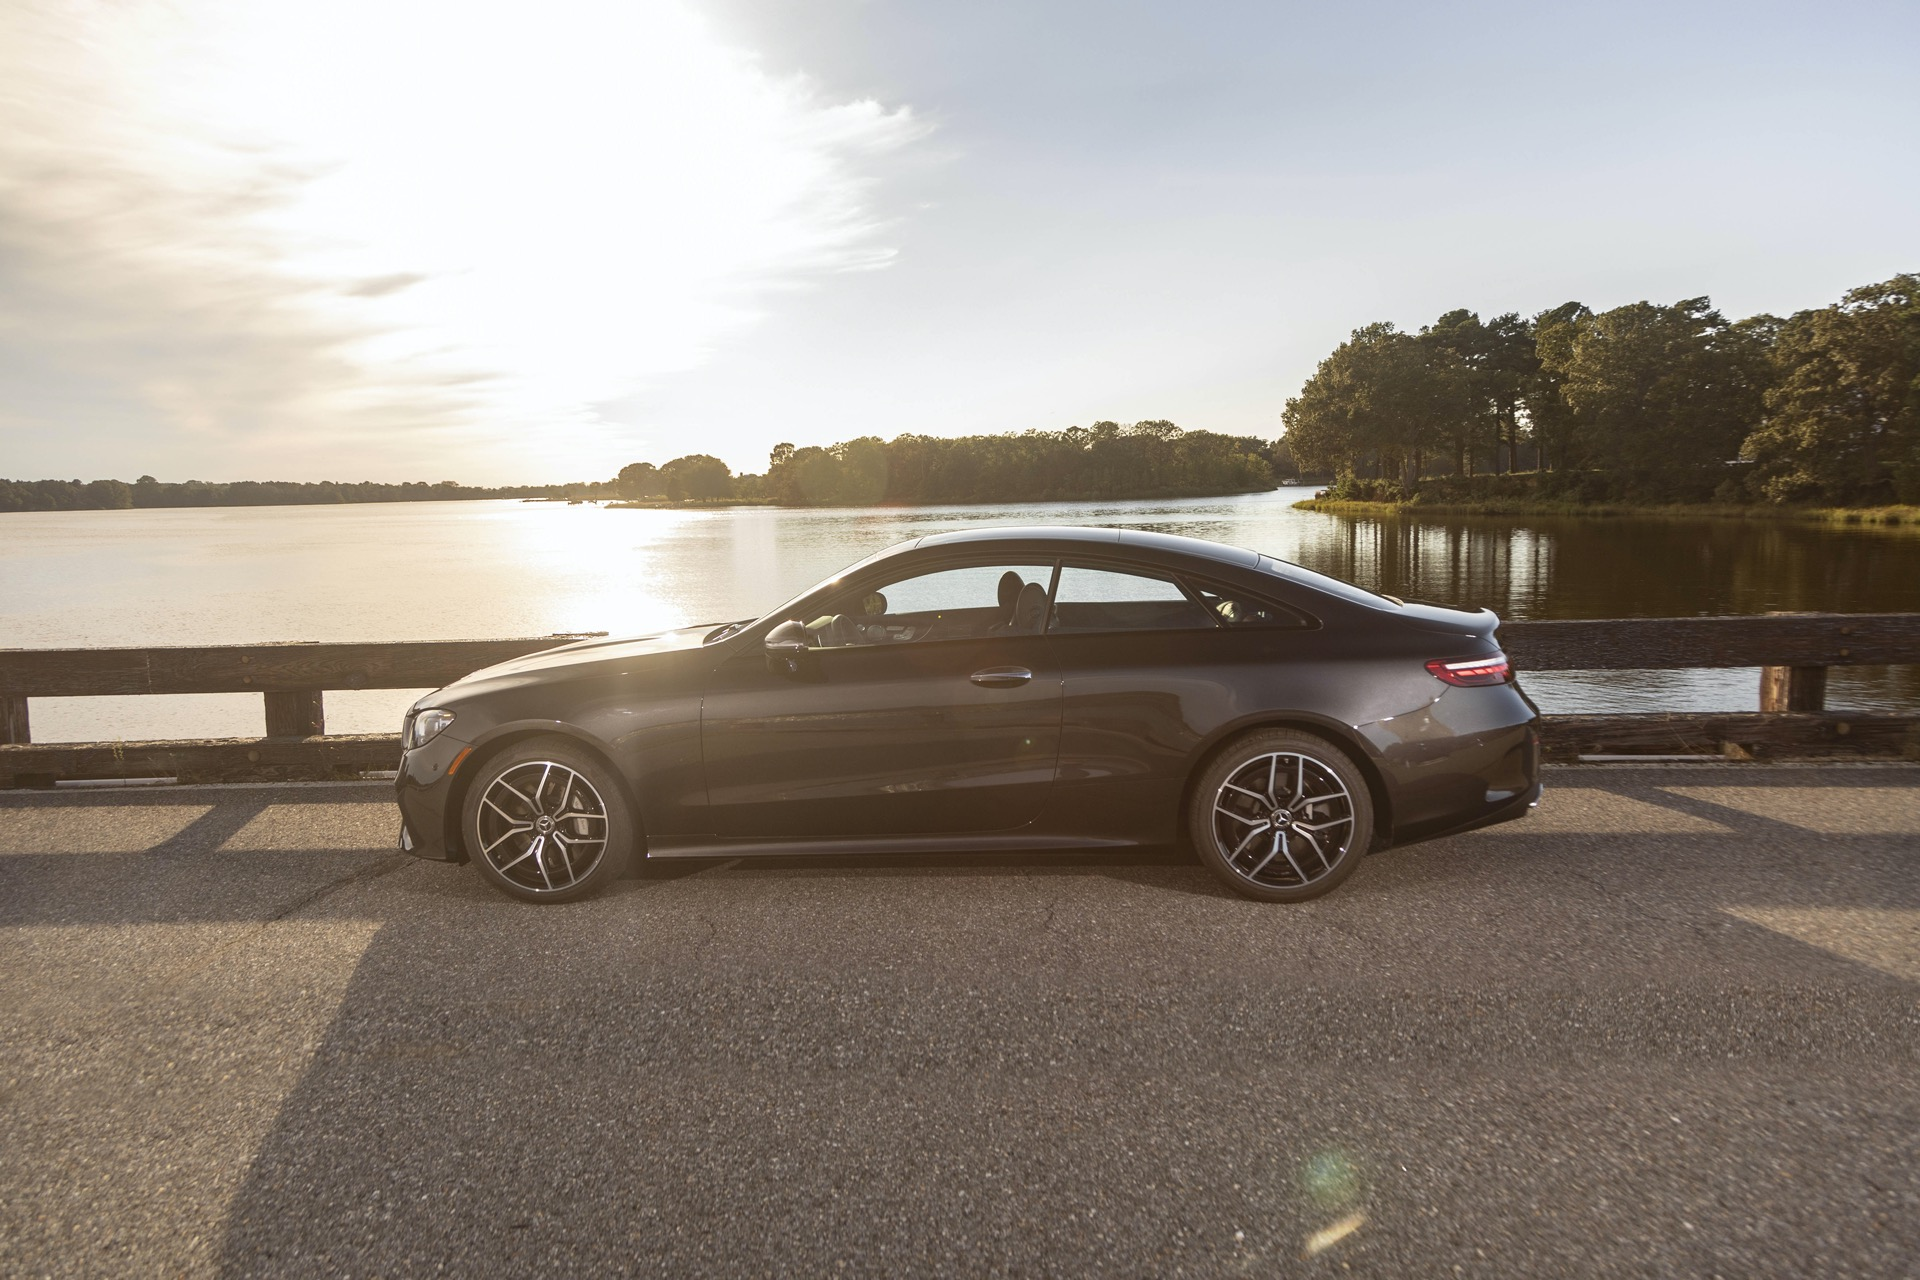 First drive review: 2021 Mercedes-Benz E450 Coupe converts a couple